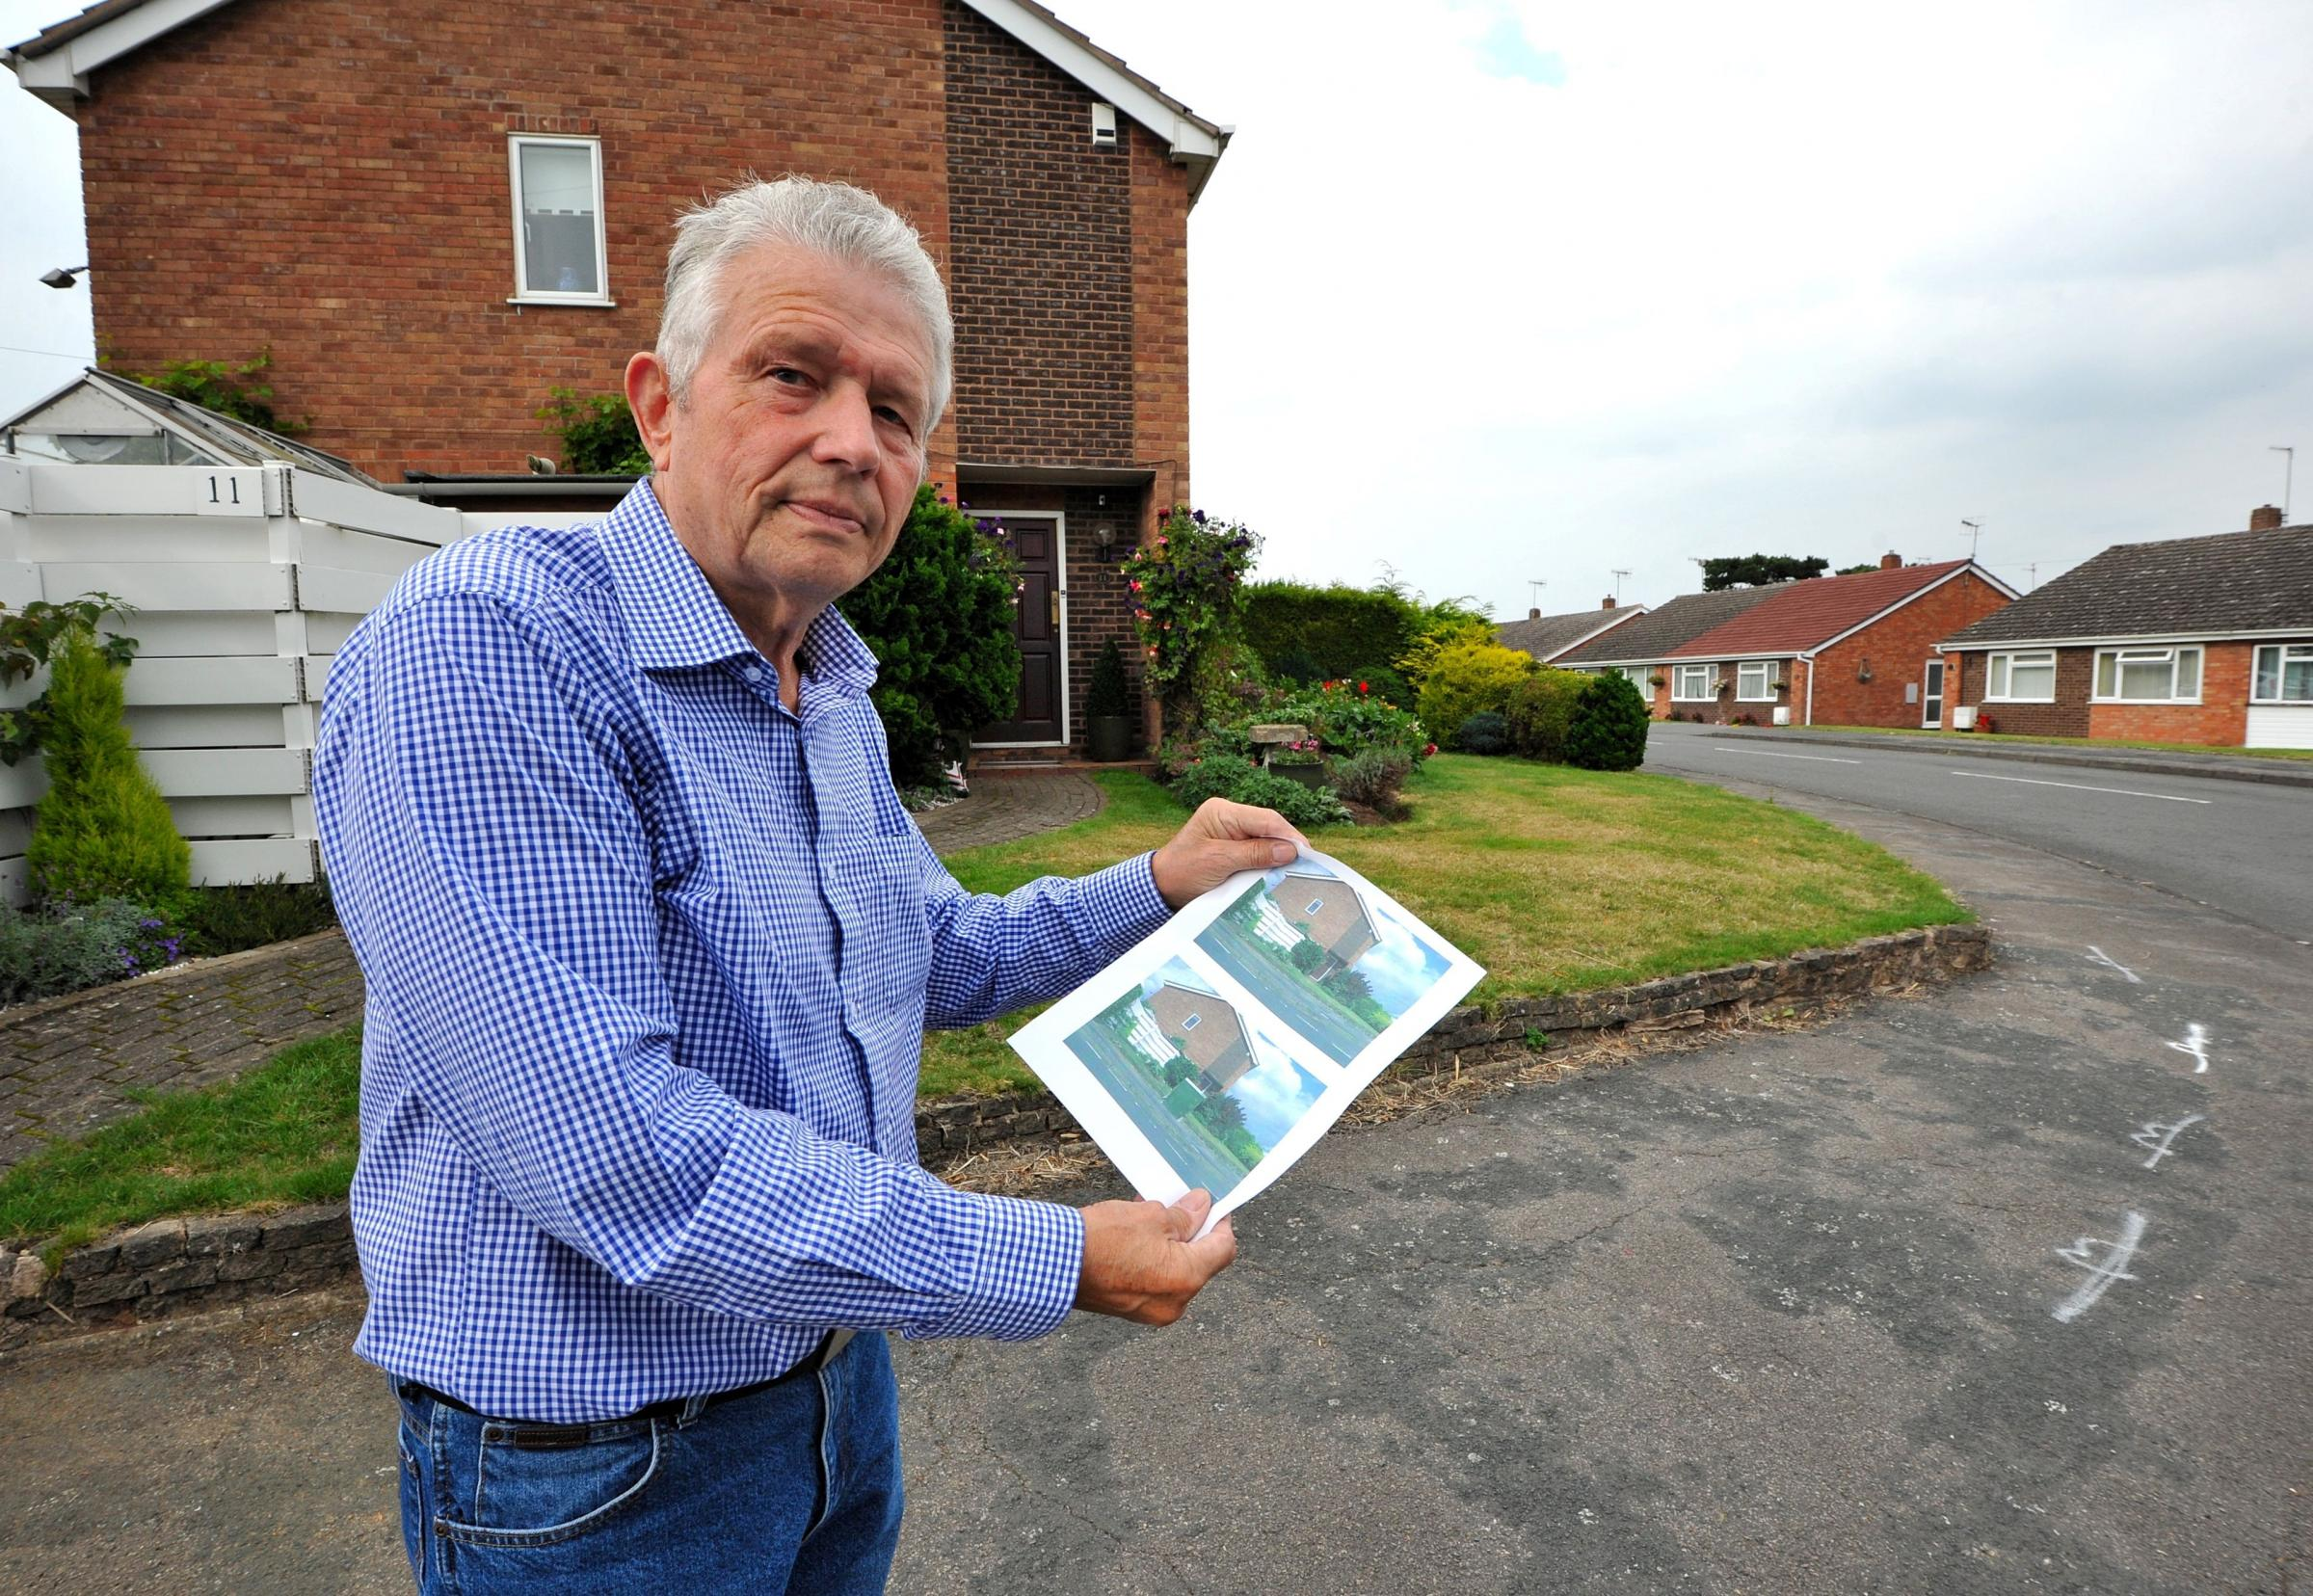 John Anyon       03/09/14             3614691401  Tony Denny from Brookend Lane, Kempsey with an artists impression of what a large BT fibre optic box would look like in fron of his house. Tony is concerned for road safety as the box would be a visual haz